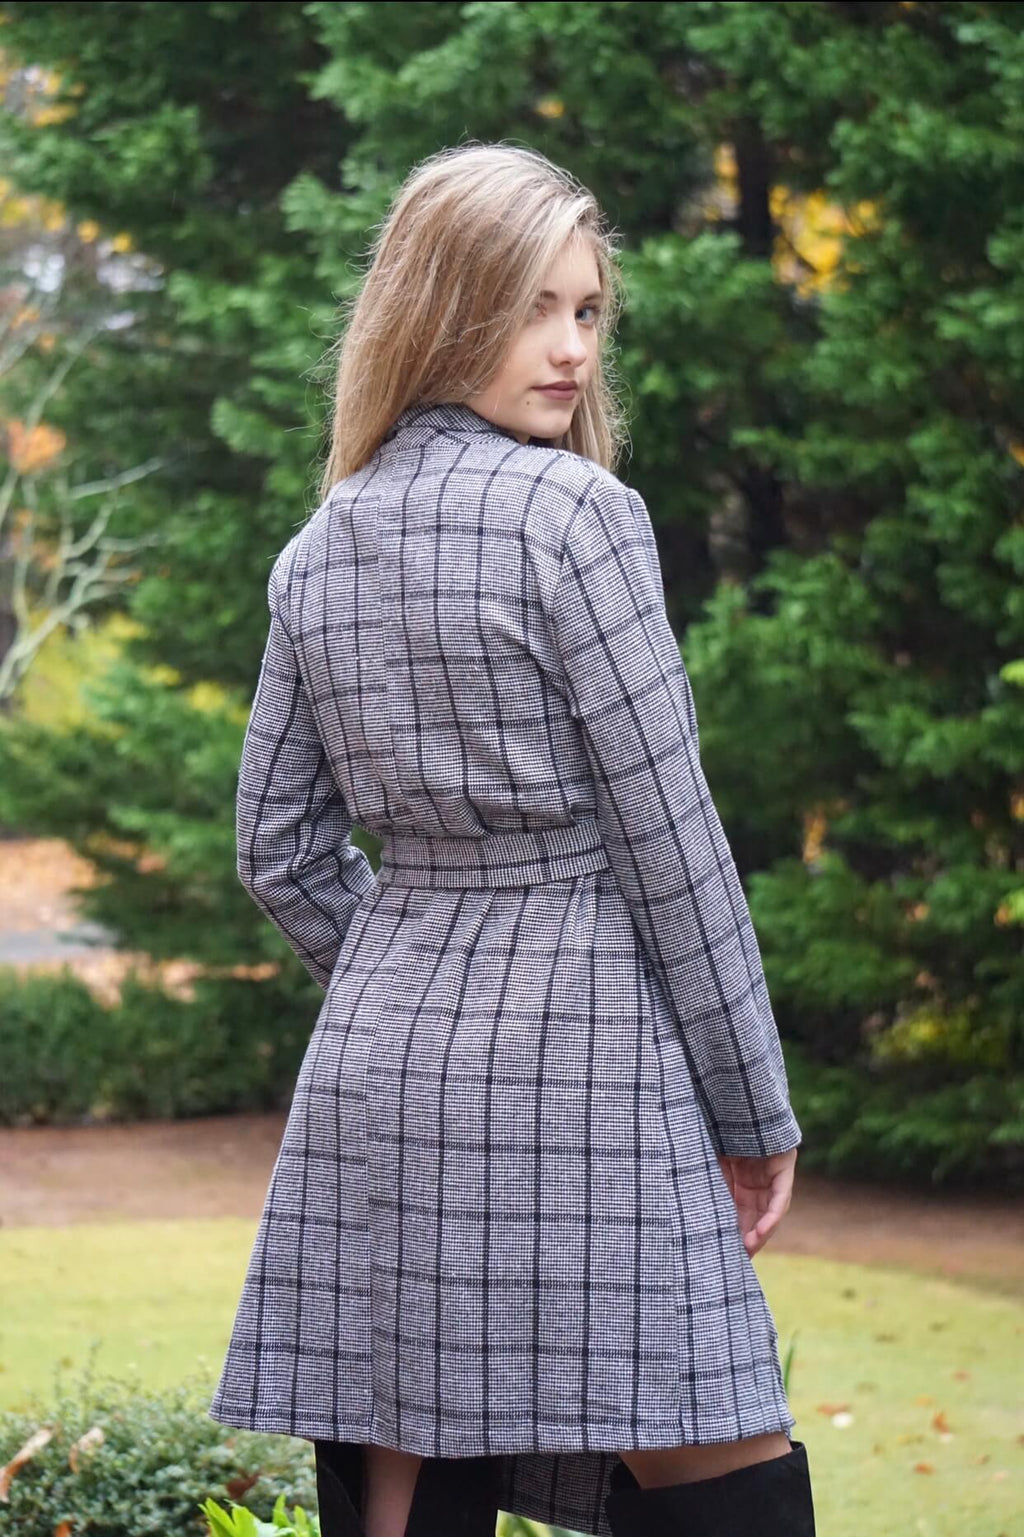 Grey Plaid Tie Long Trench Coat